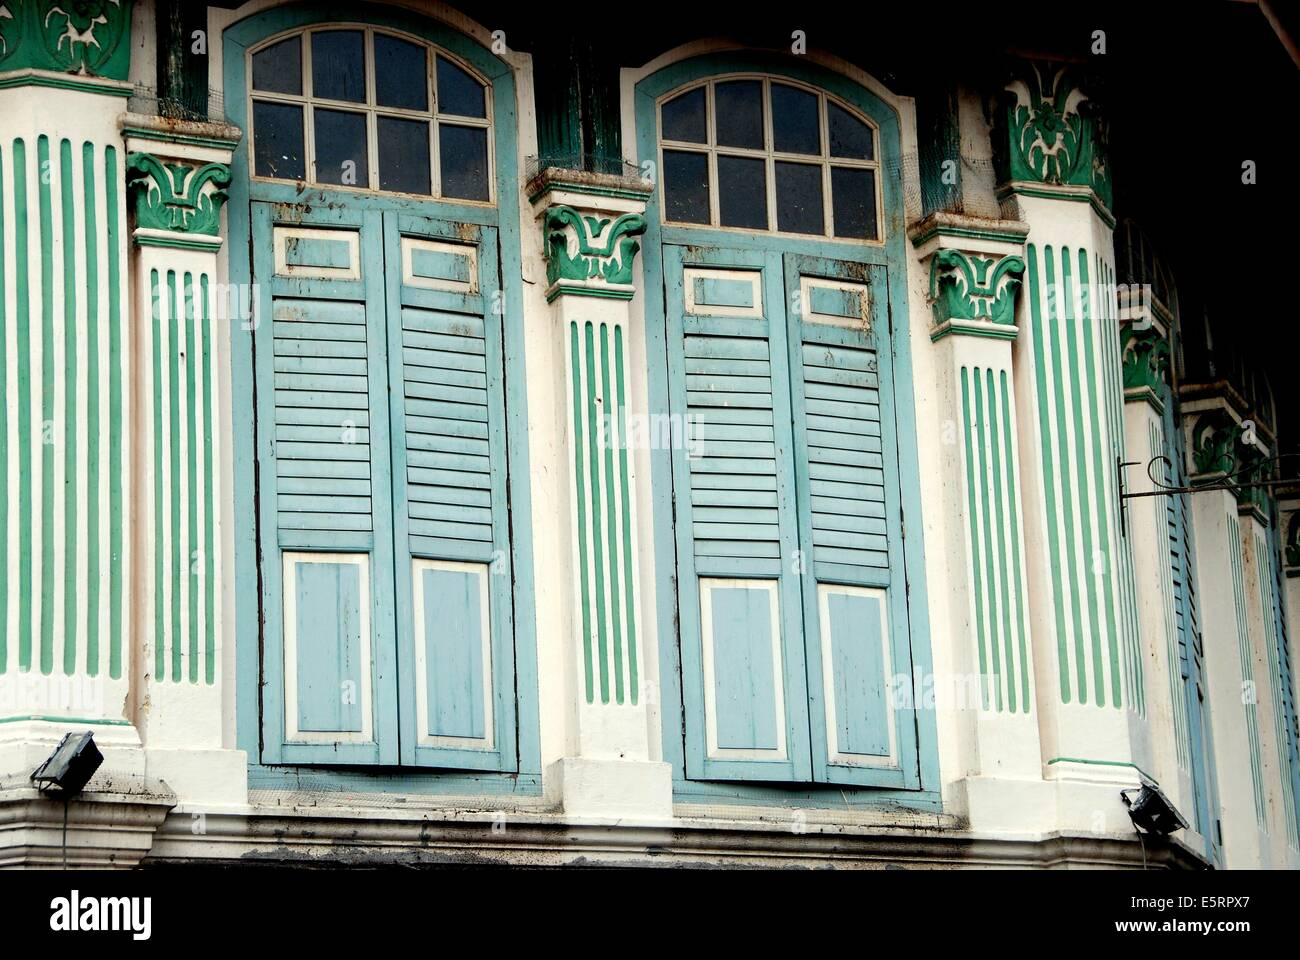 Elegant Shop House Stock Photos & Elegant Shop House Stock Images ...